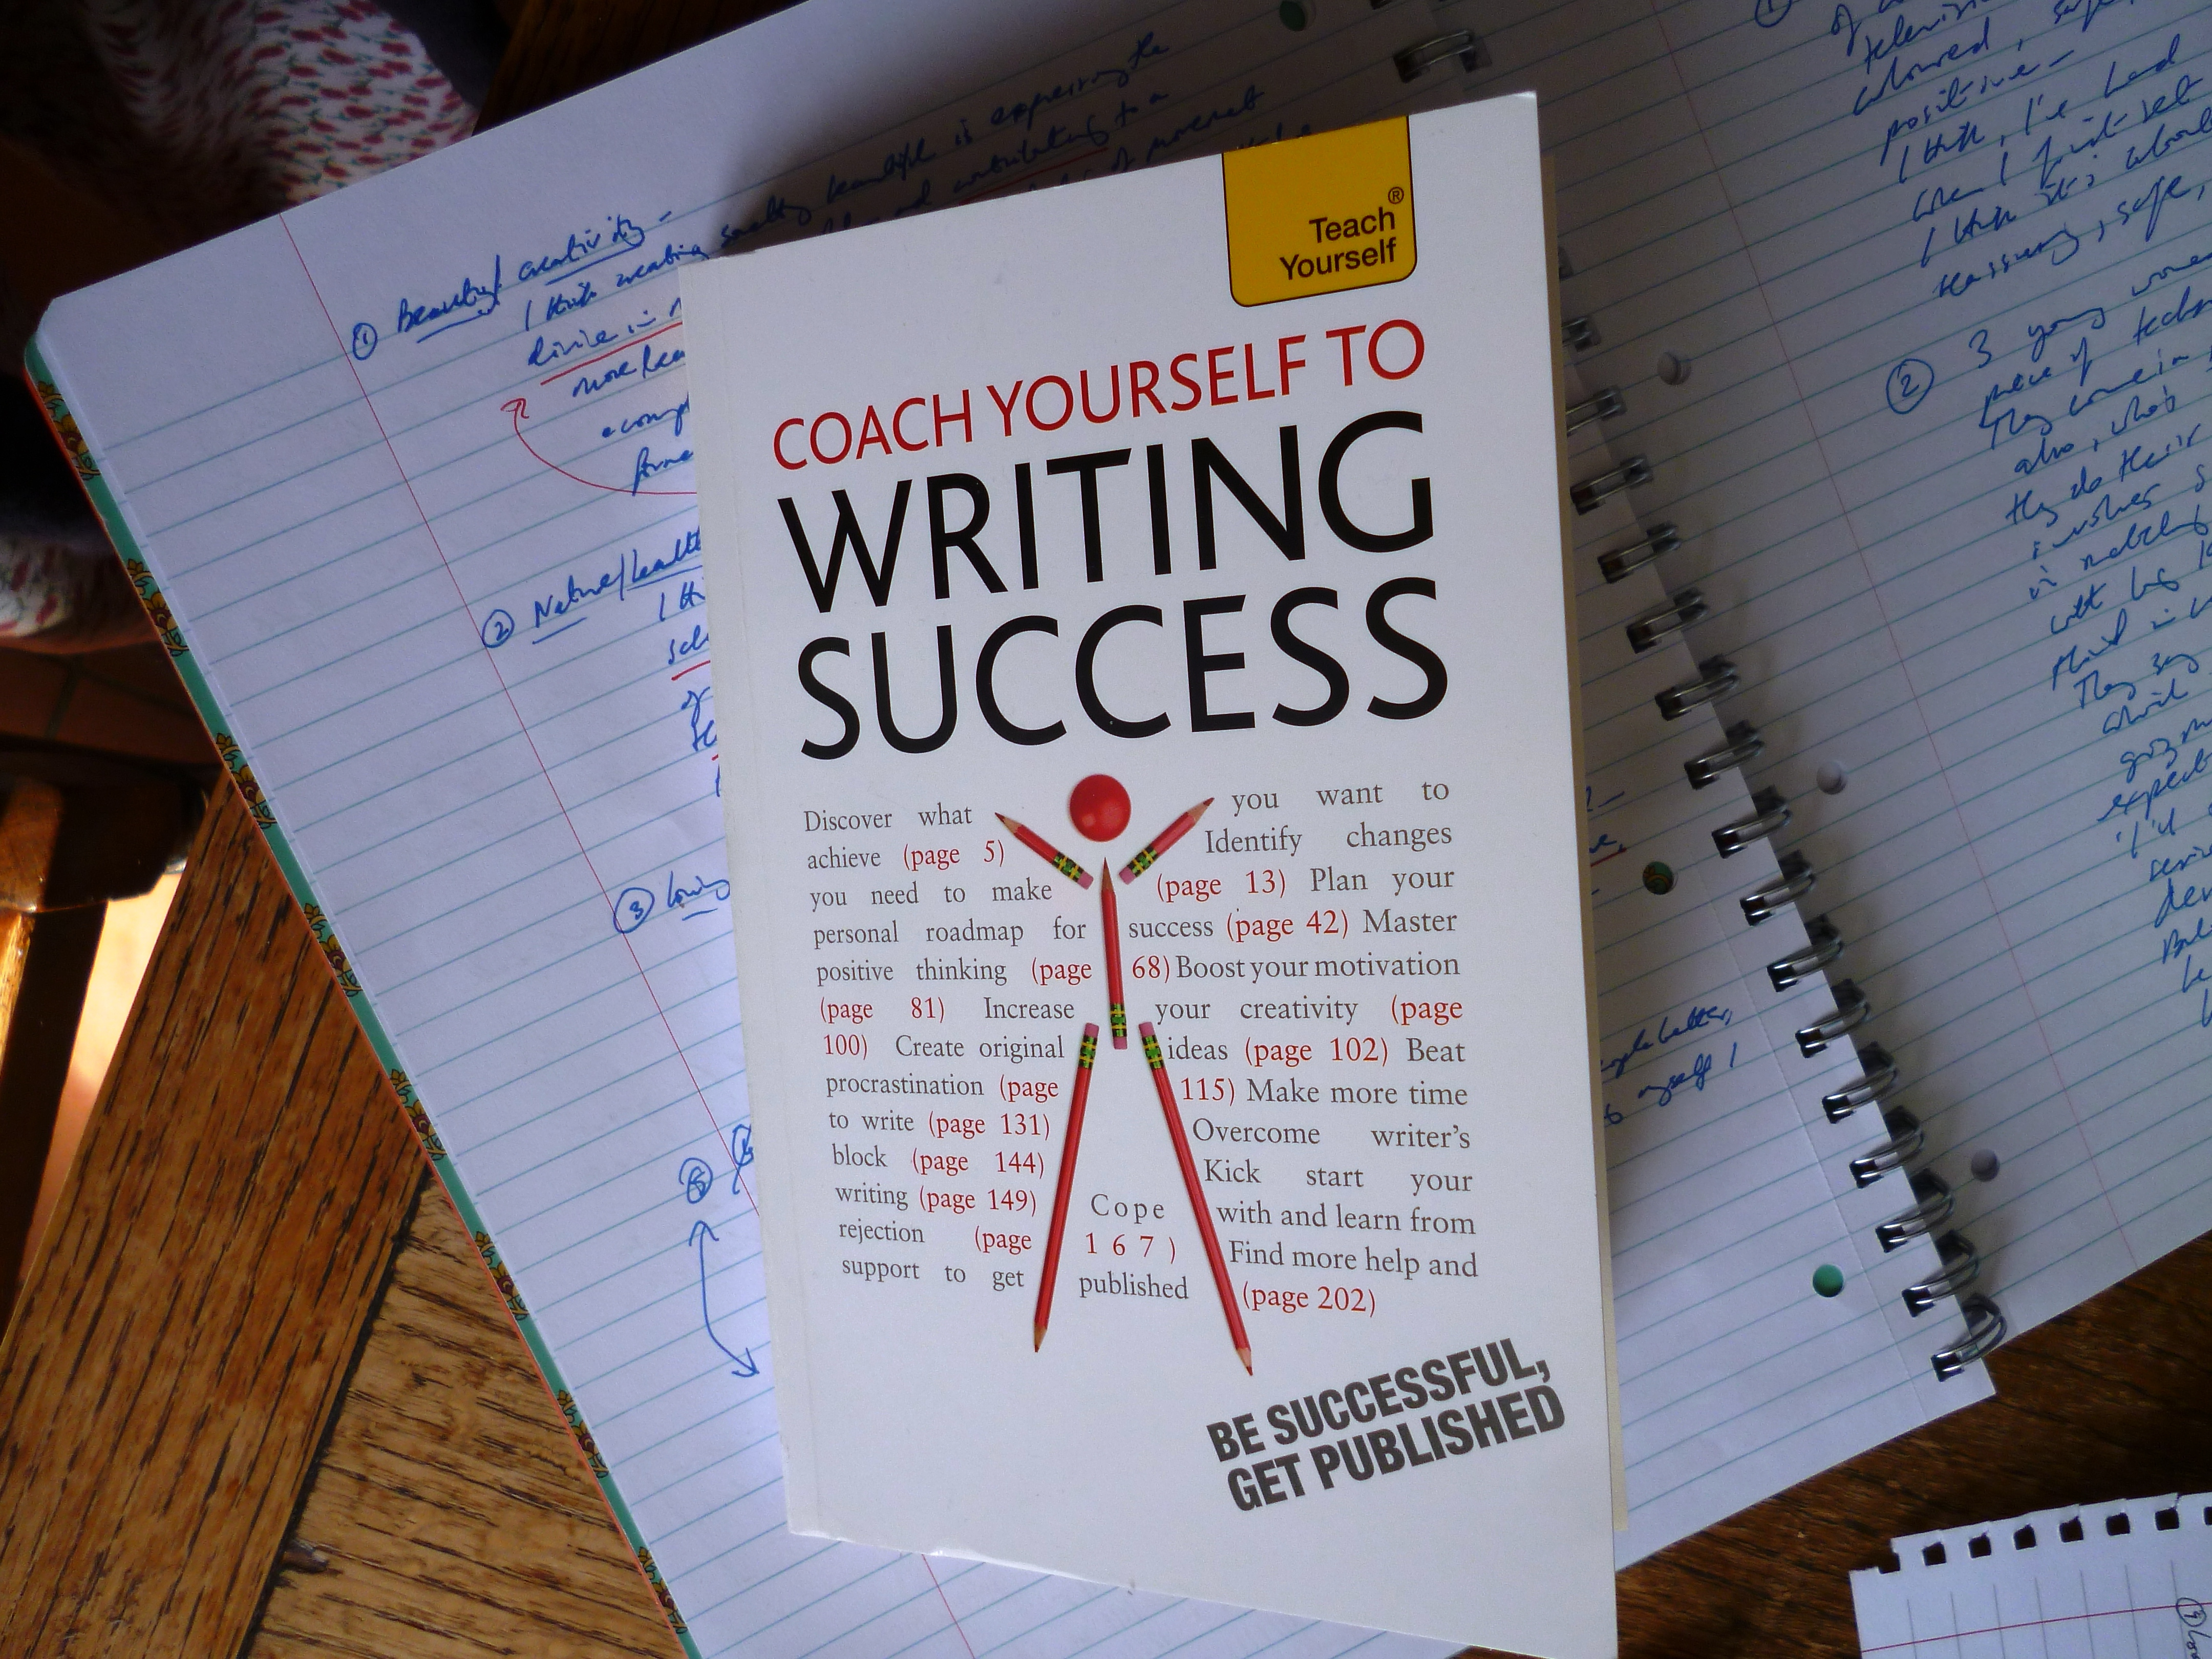 writing self help books How to write a self-help book a self-help book must be complete it must include all the information the reader will need to acquire the skill you're teaching for example, if the first step of systematic desensitization is to learn relaxation techniques, you need to teach relaxation techniques first.